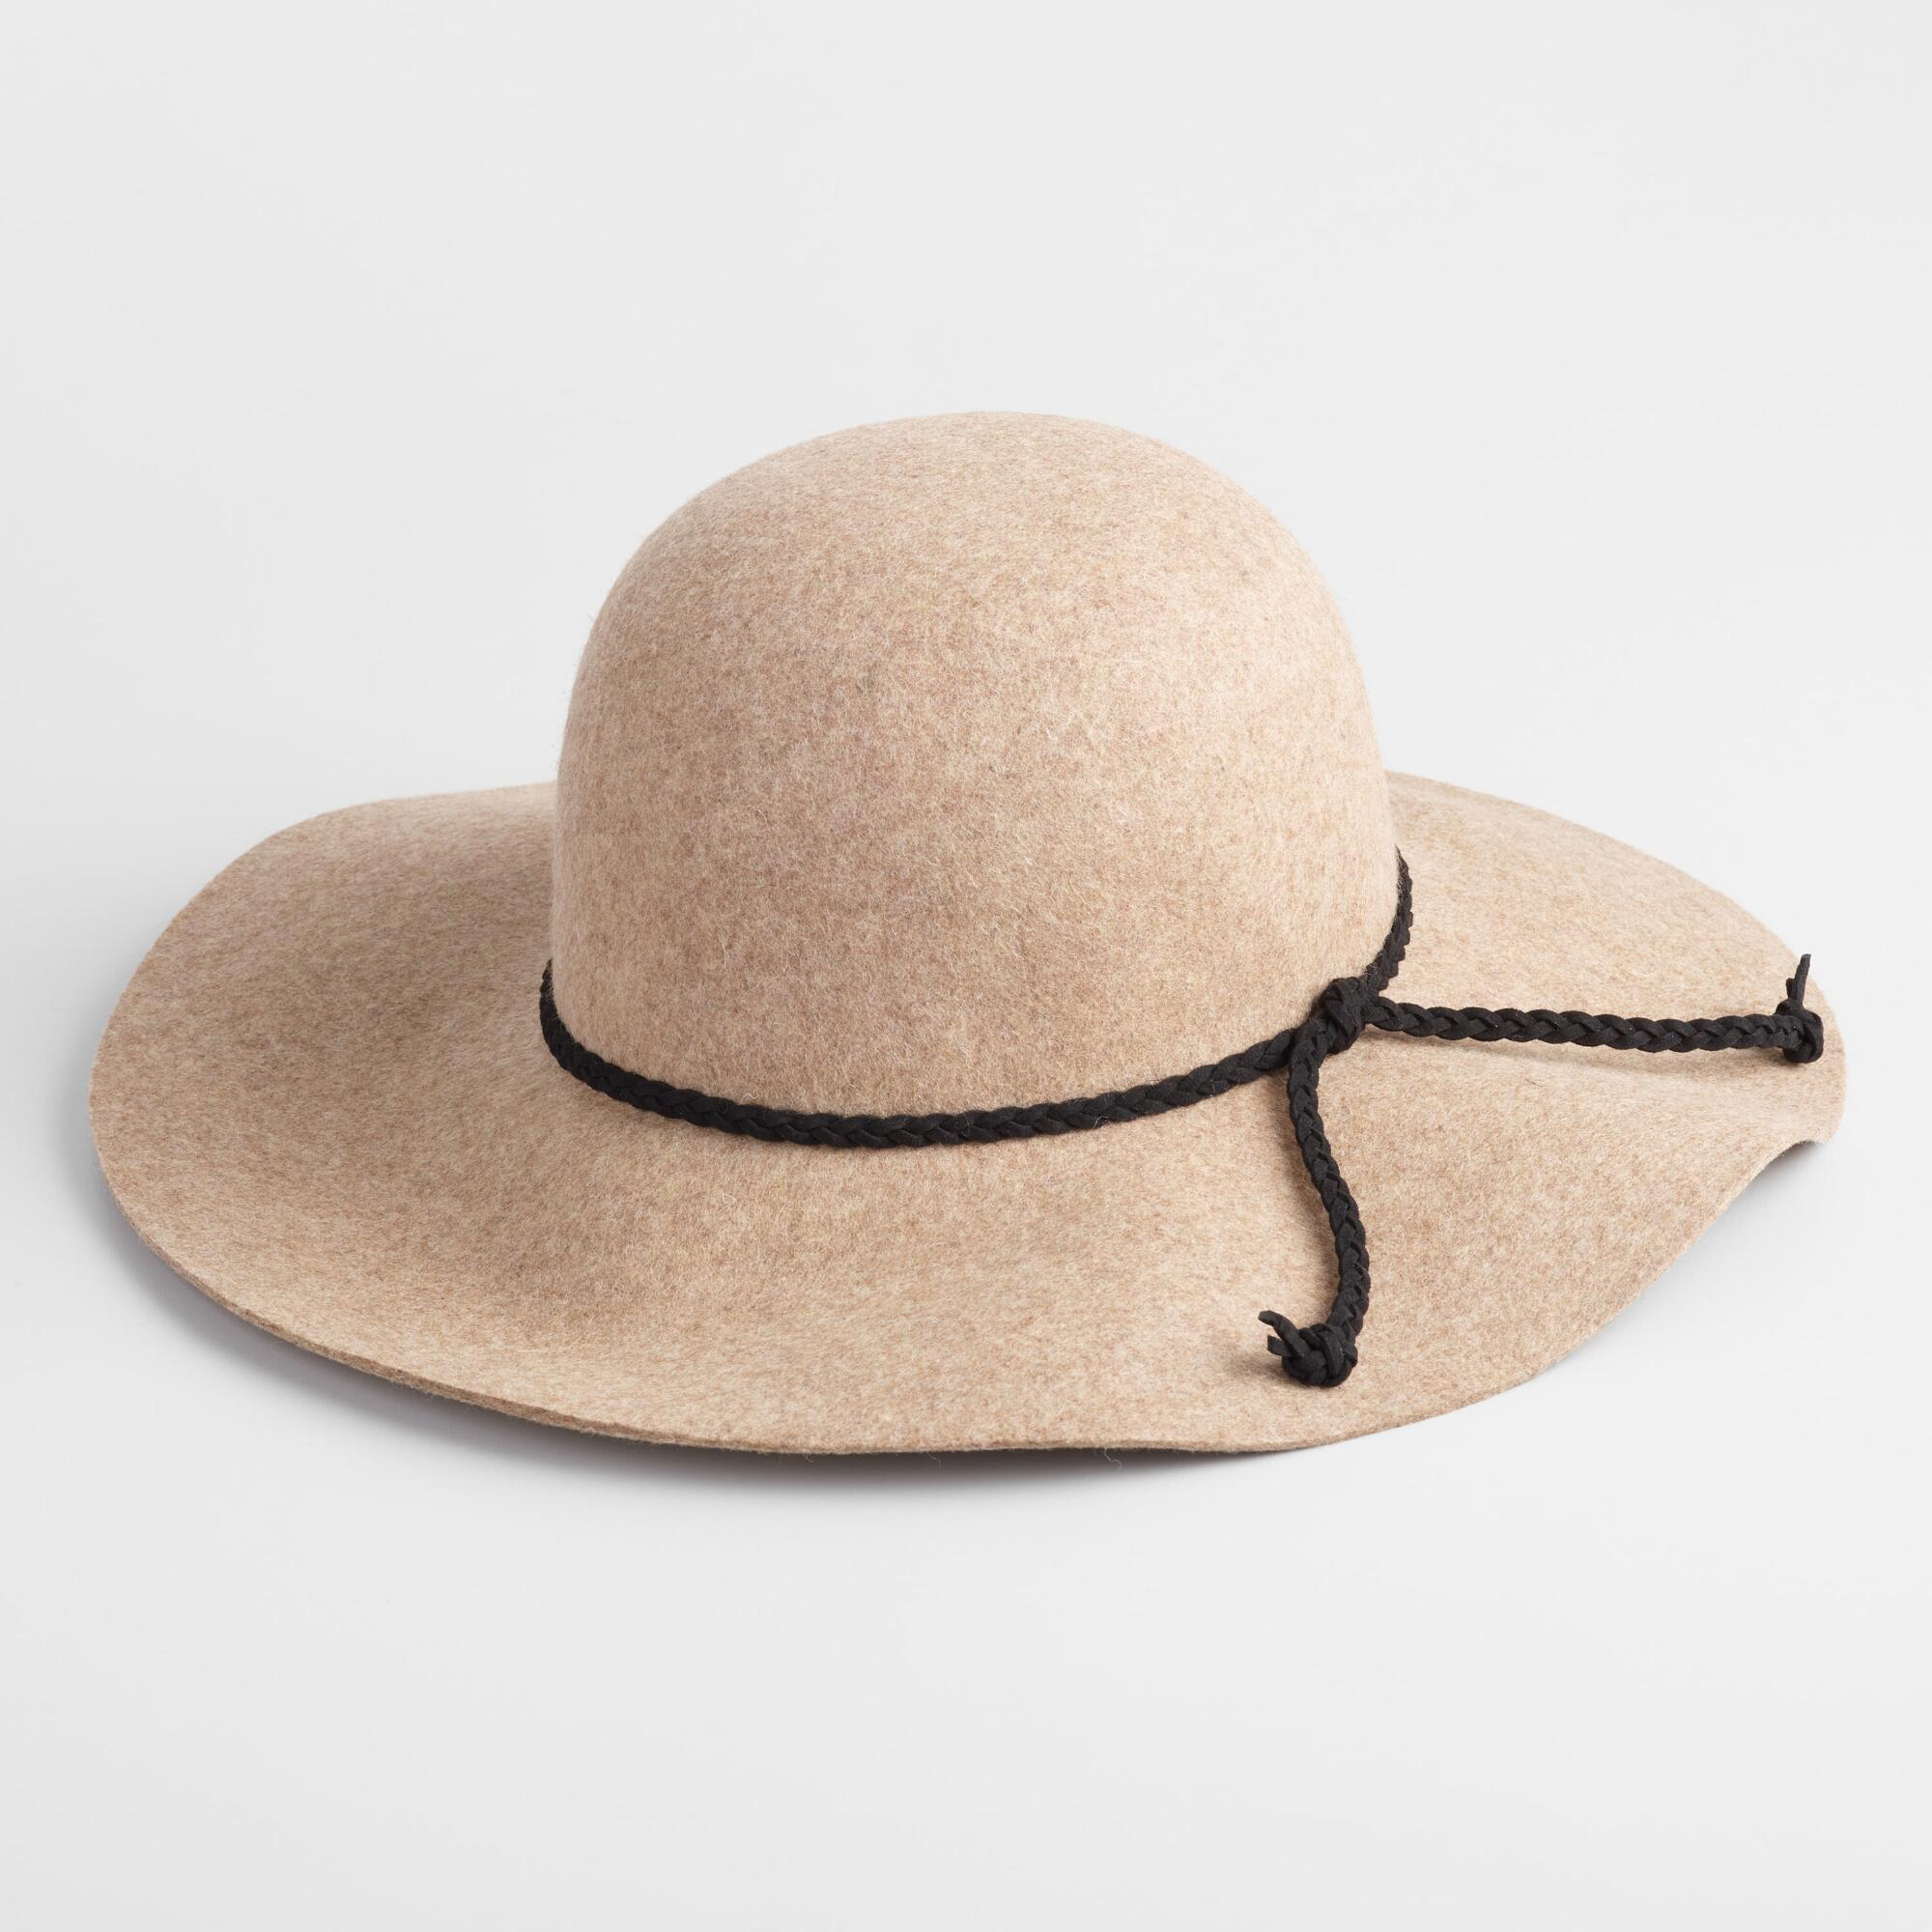 Women's Vintage Hats   Old Fashioned Hats   Retro Hats Oatmeal Wool Floppy Hat by World Market $24.99 AT vintagedancer.com